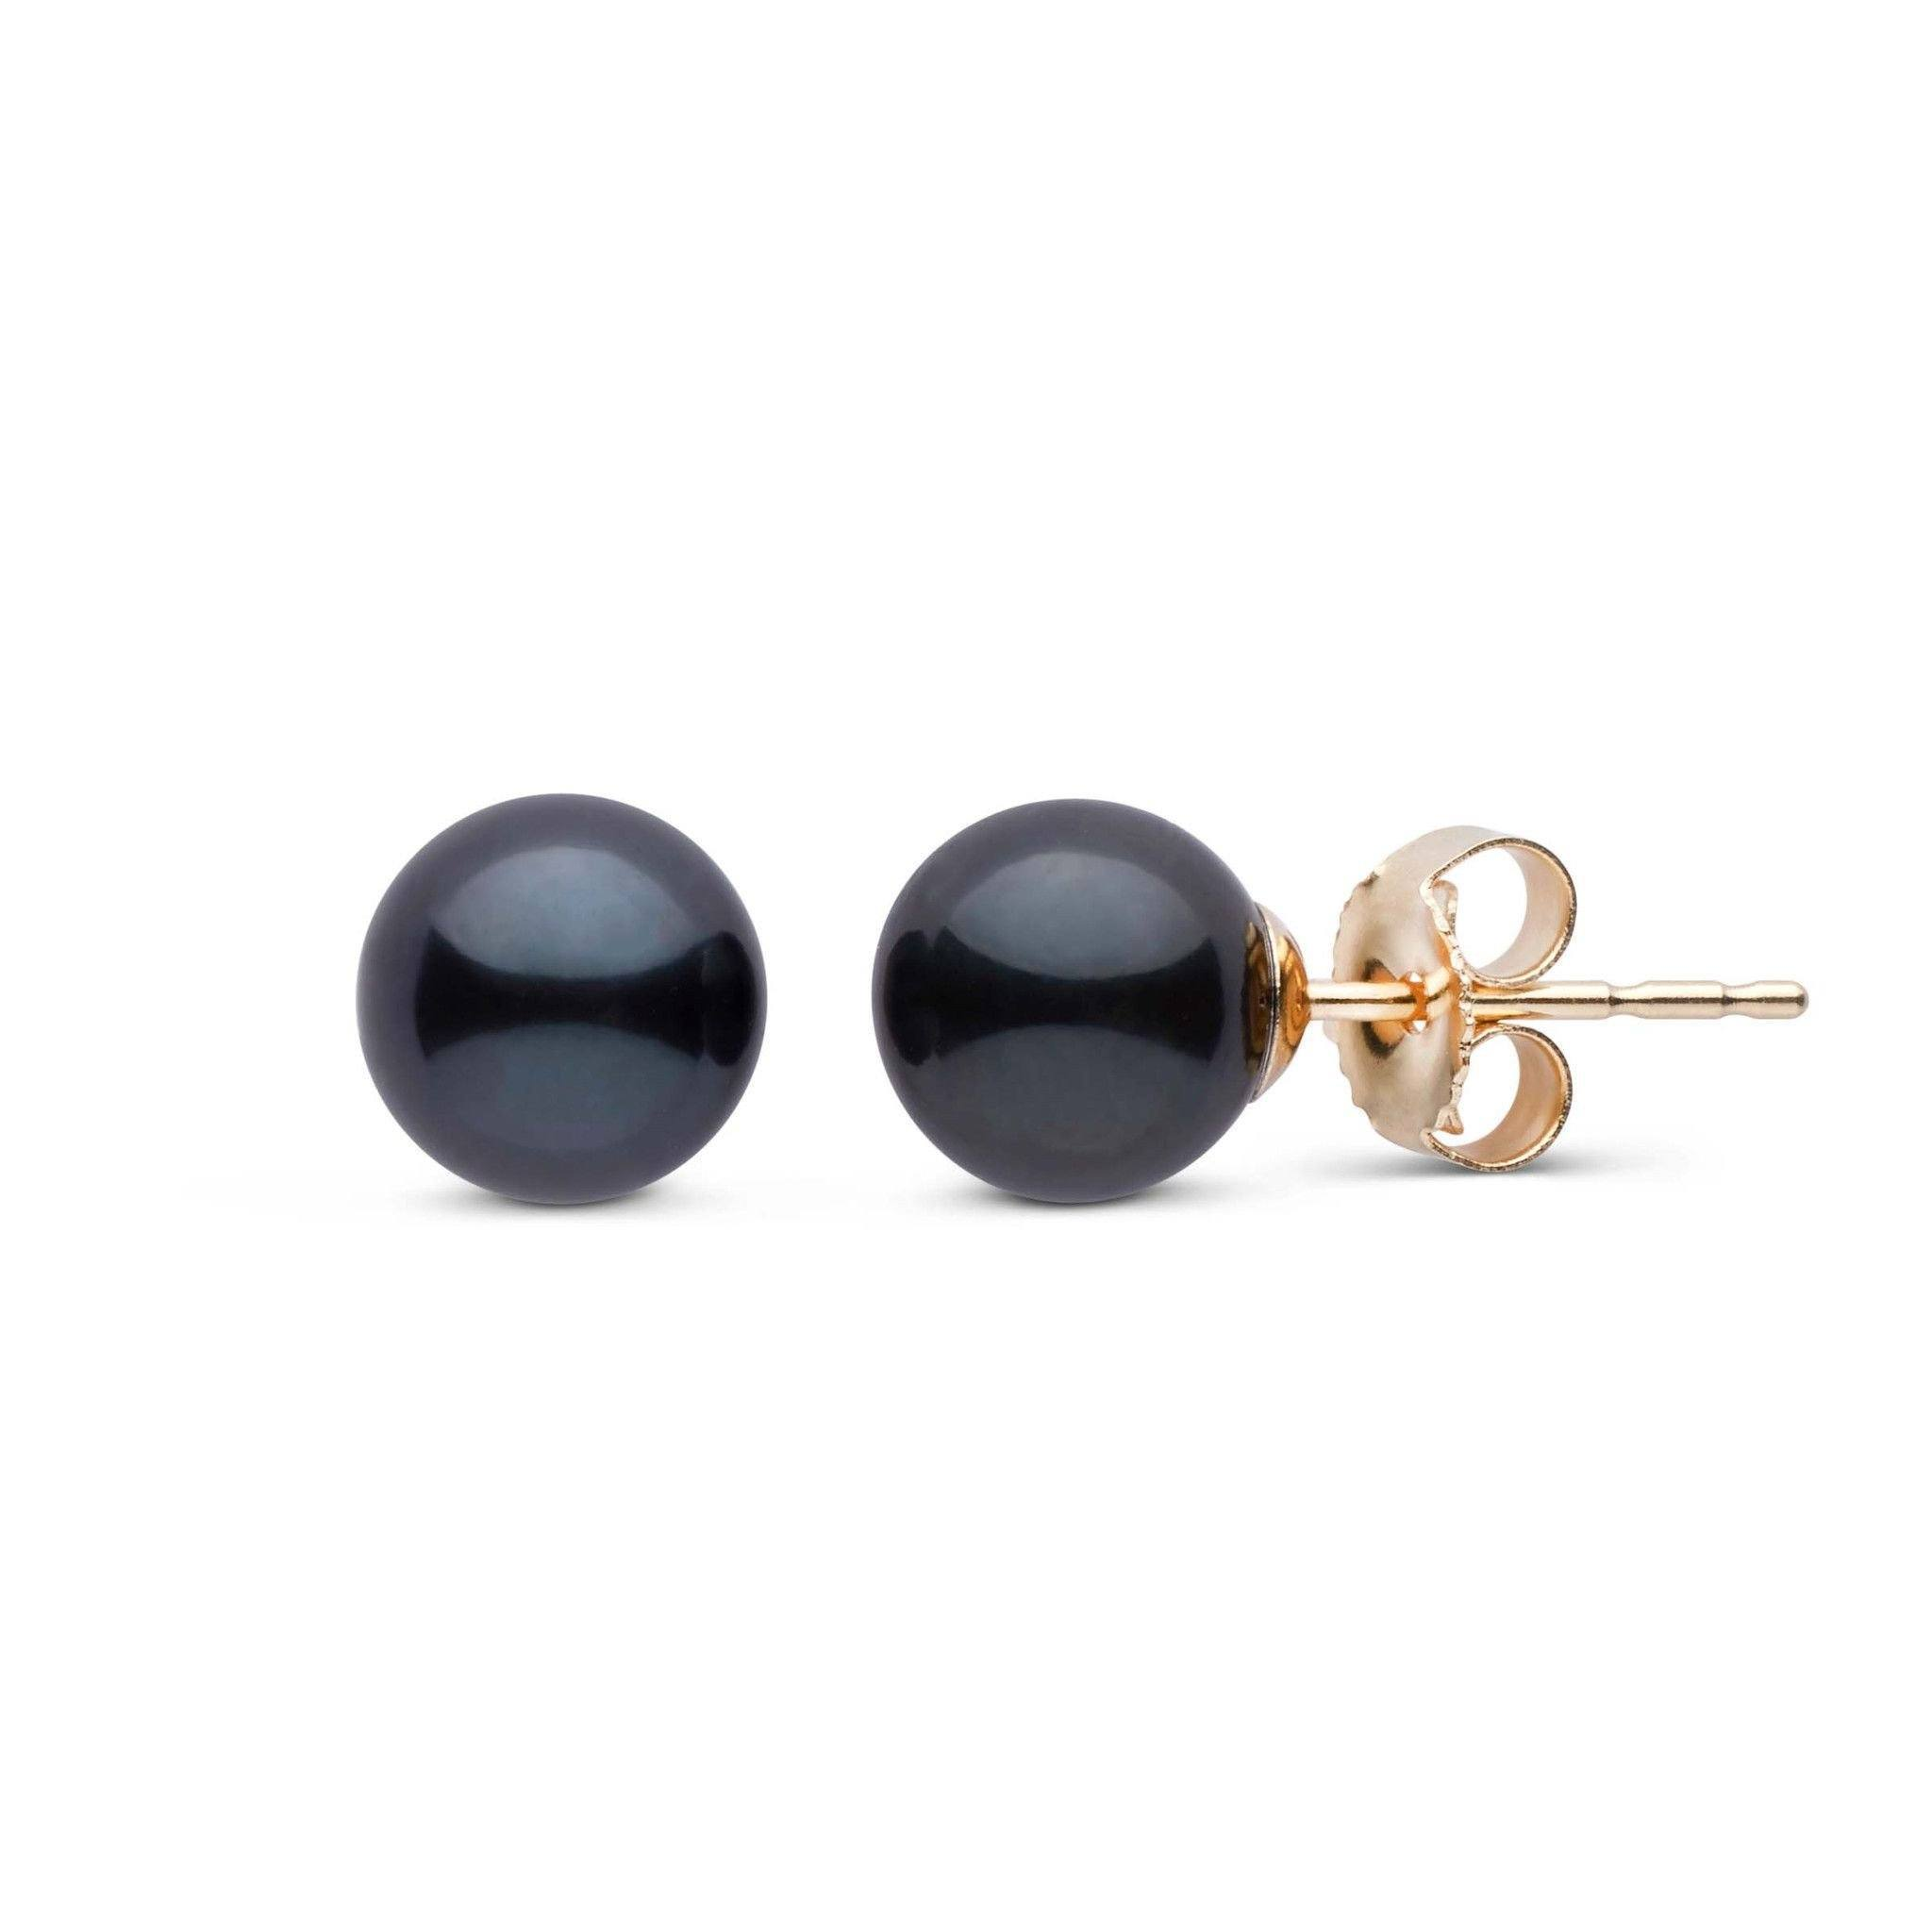 6.5-7.0 mm AA+ Black Akoya Pearl Stud Earrings